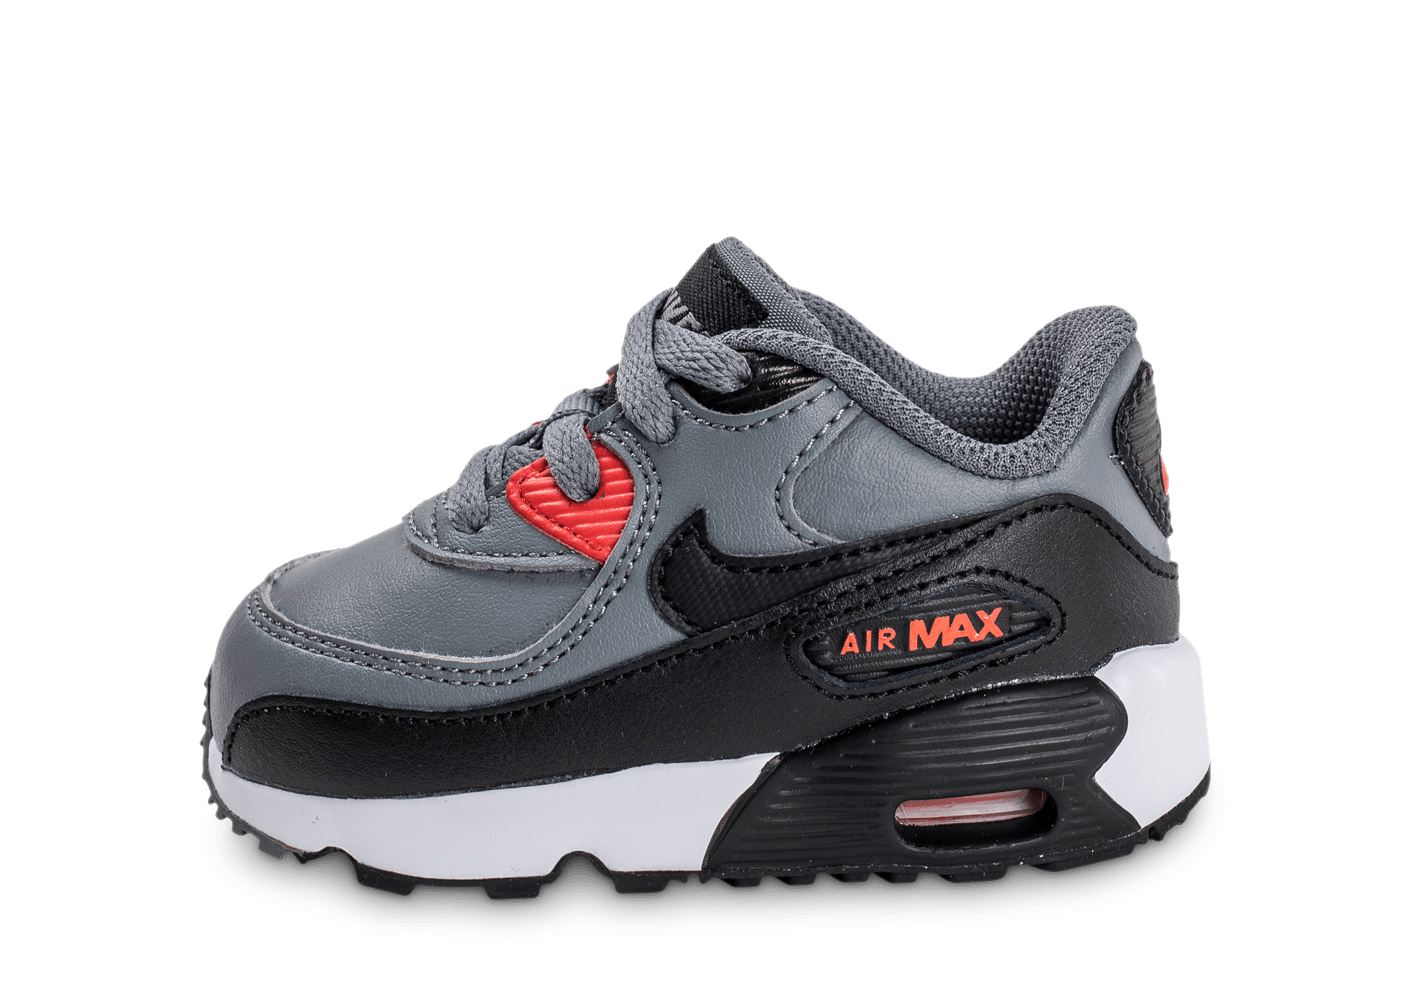 Nike Air Max 90 bébé mesh grise et orange